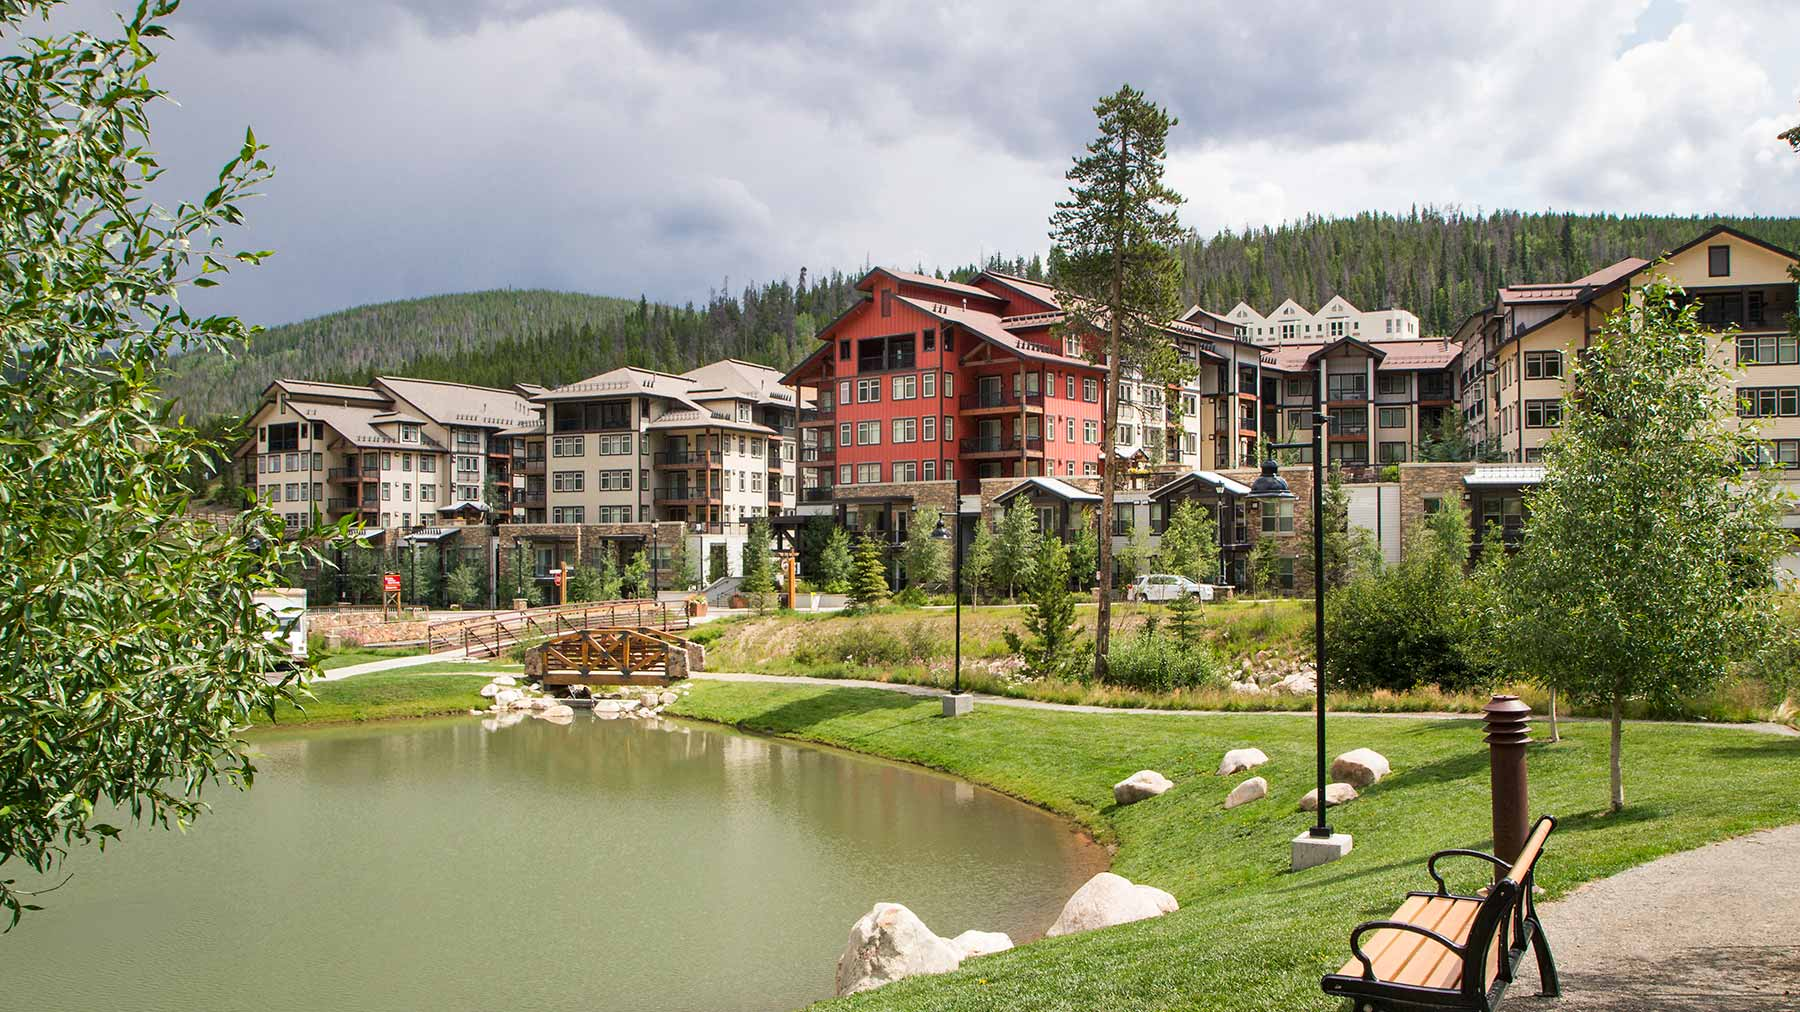 Fraser crossing founders pointe for Winter park colorado cabins